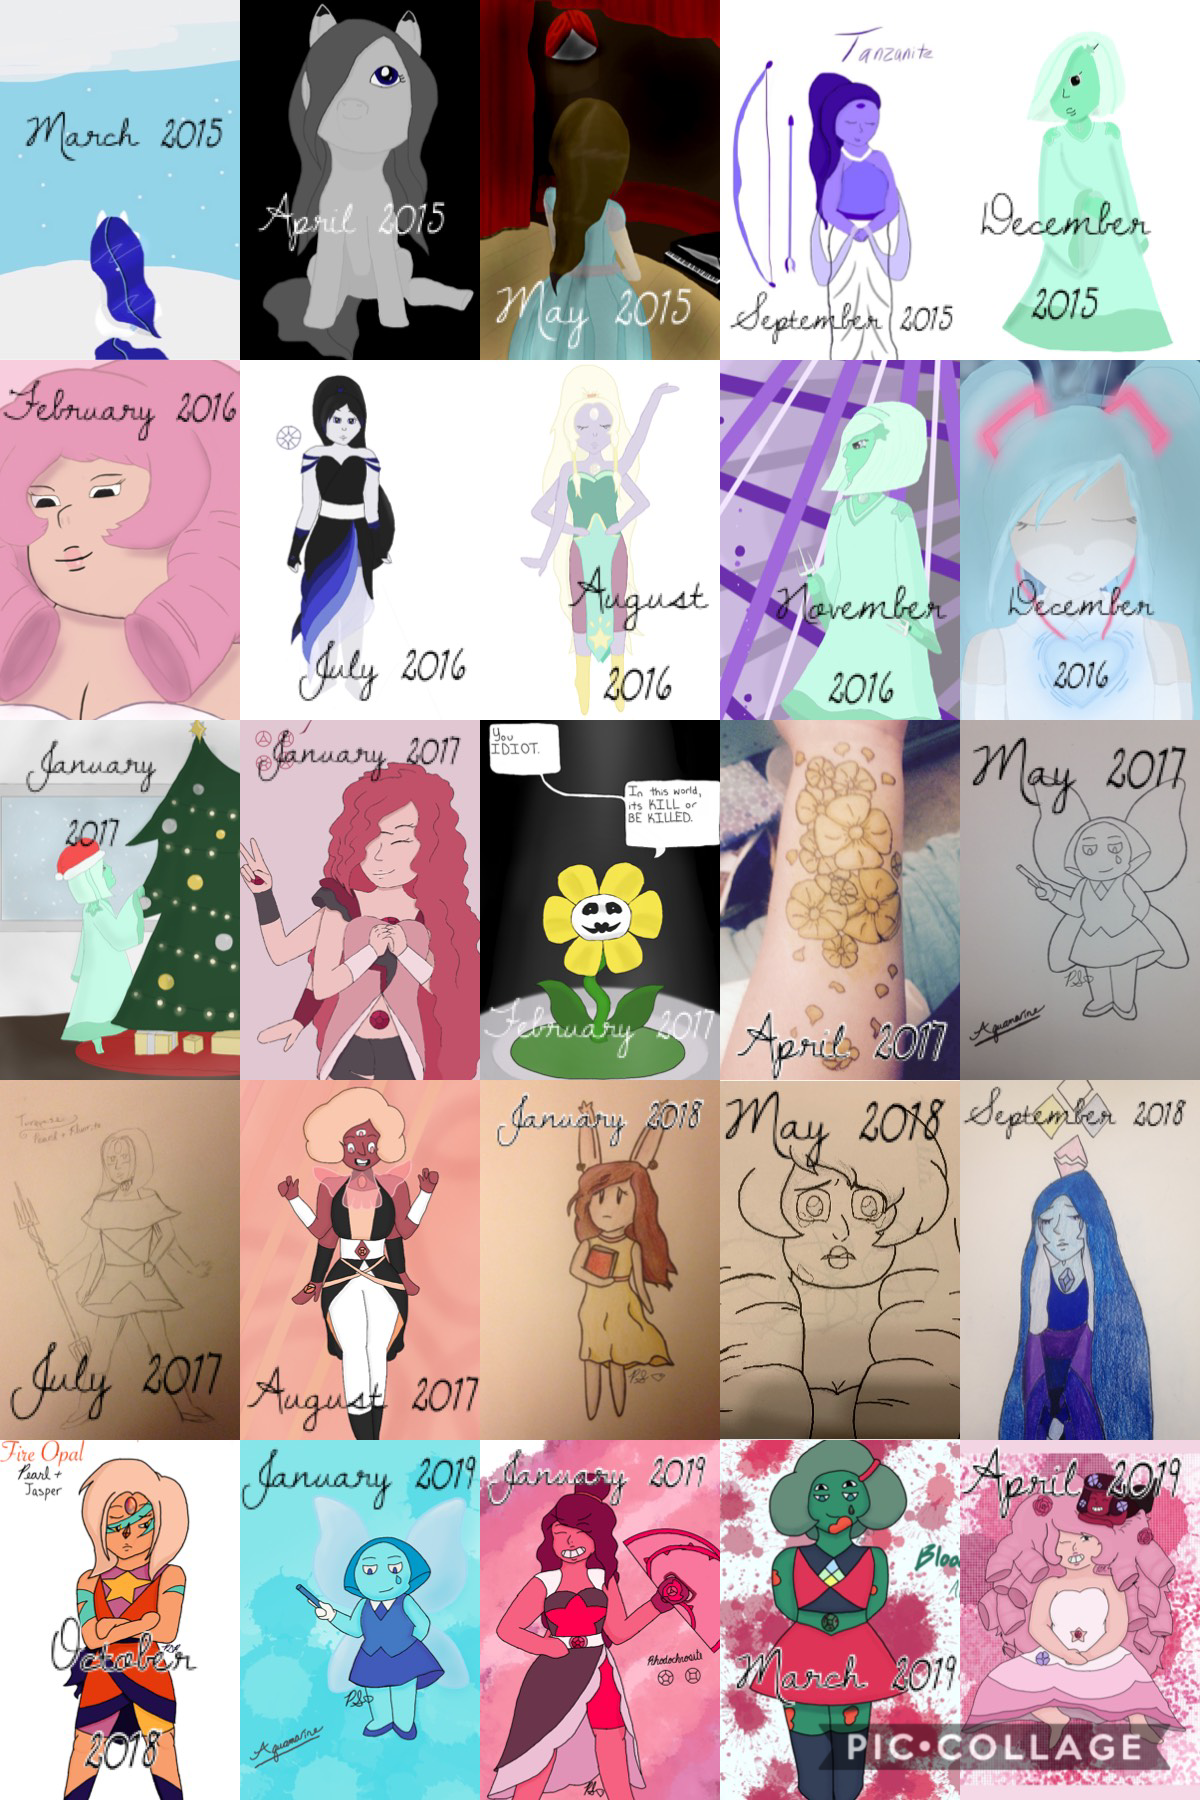 Art progress! I'm actually really proud of how much I've grown over the past four years. 💕  Side note: Check out my most recent post and let me know what you think :)